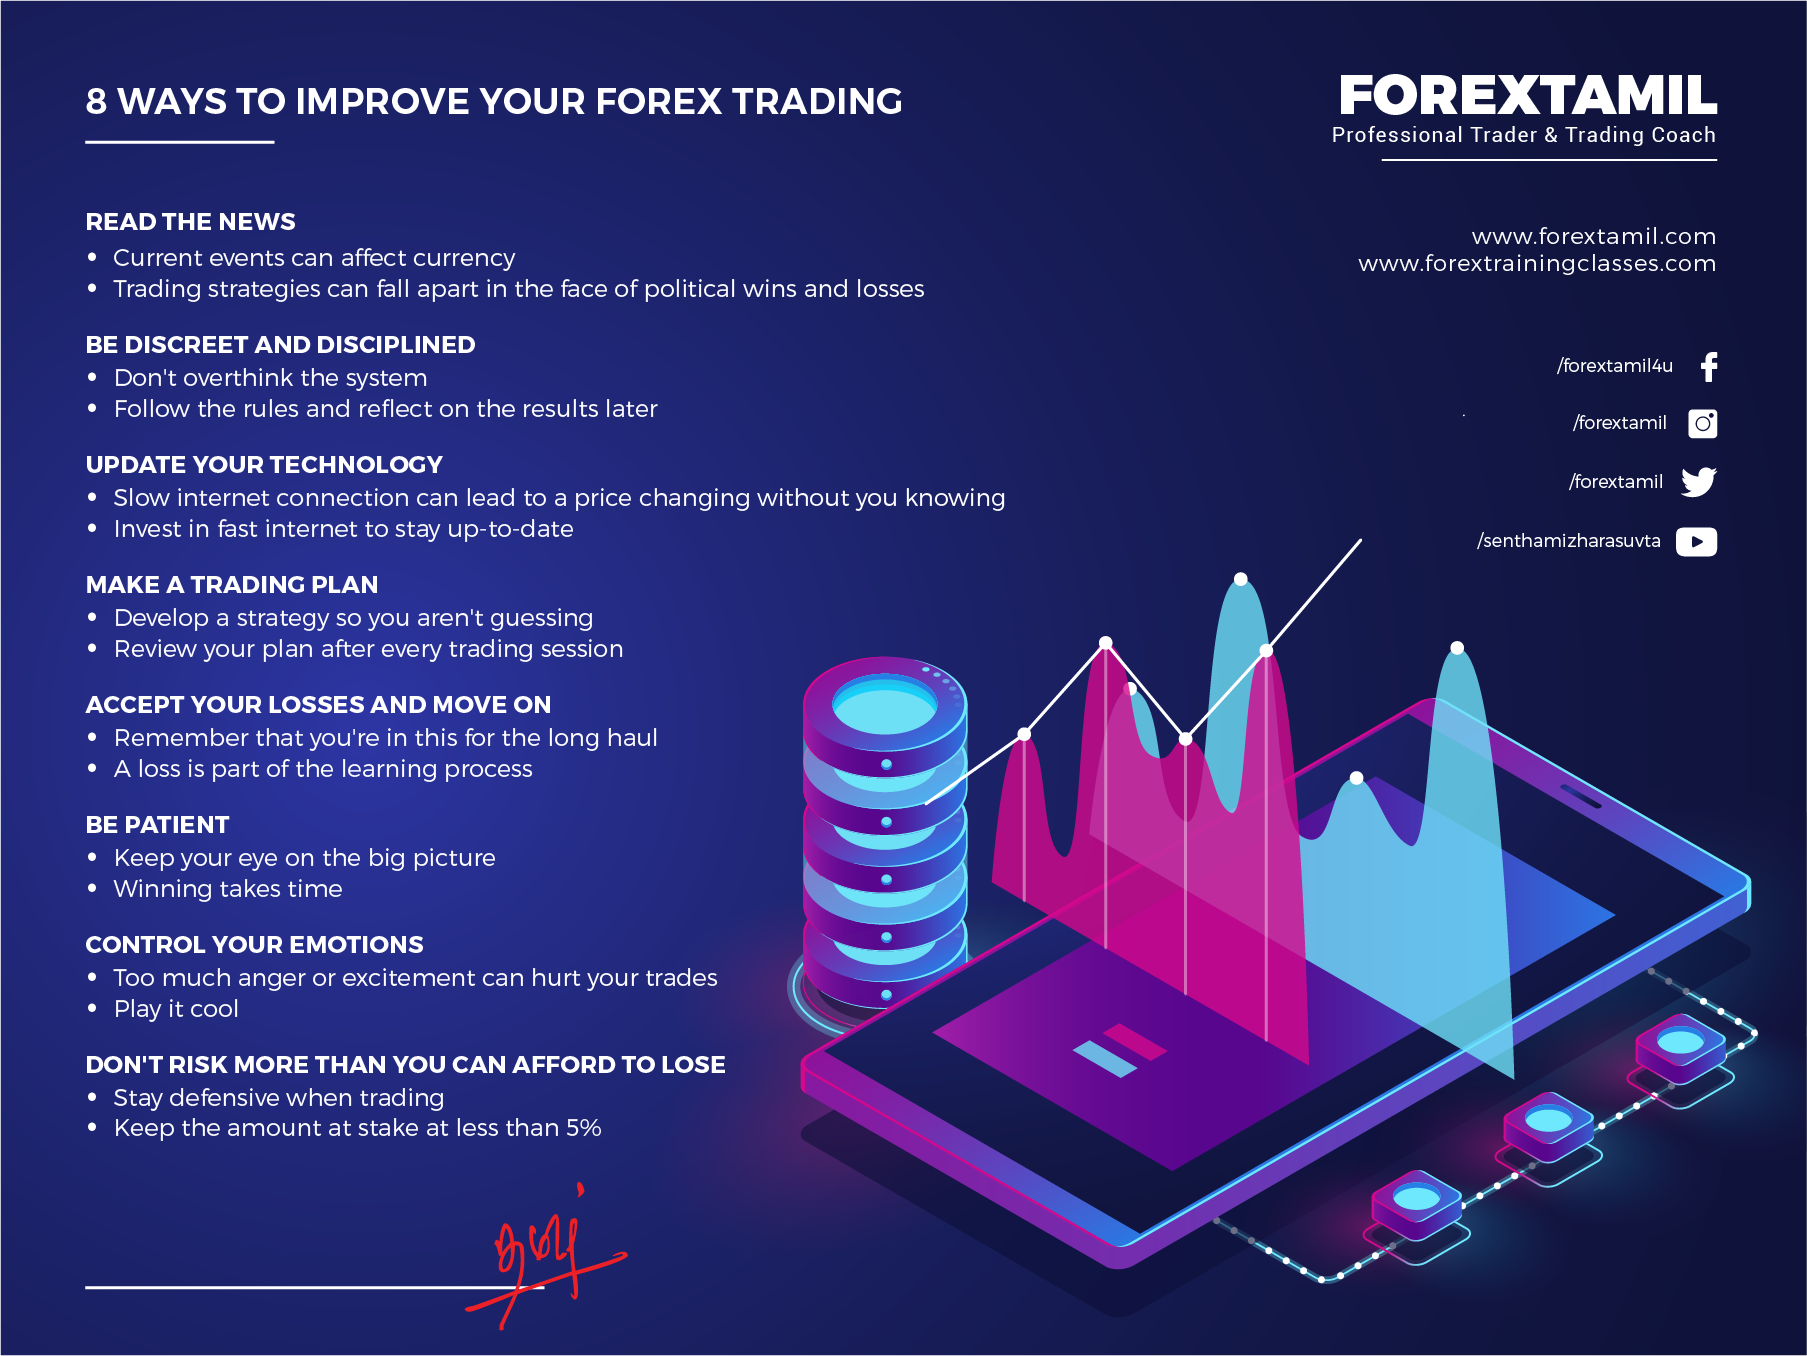 8 ways to improve your Forex trading